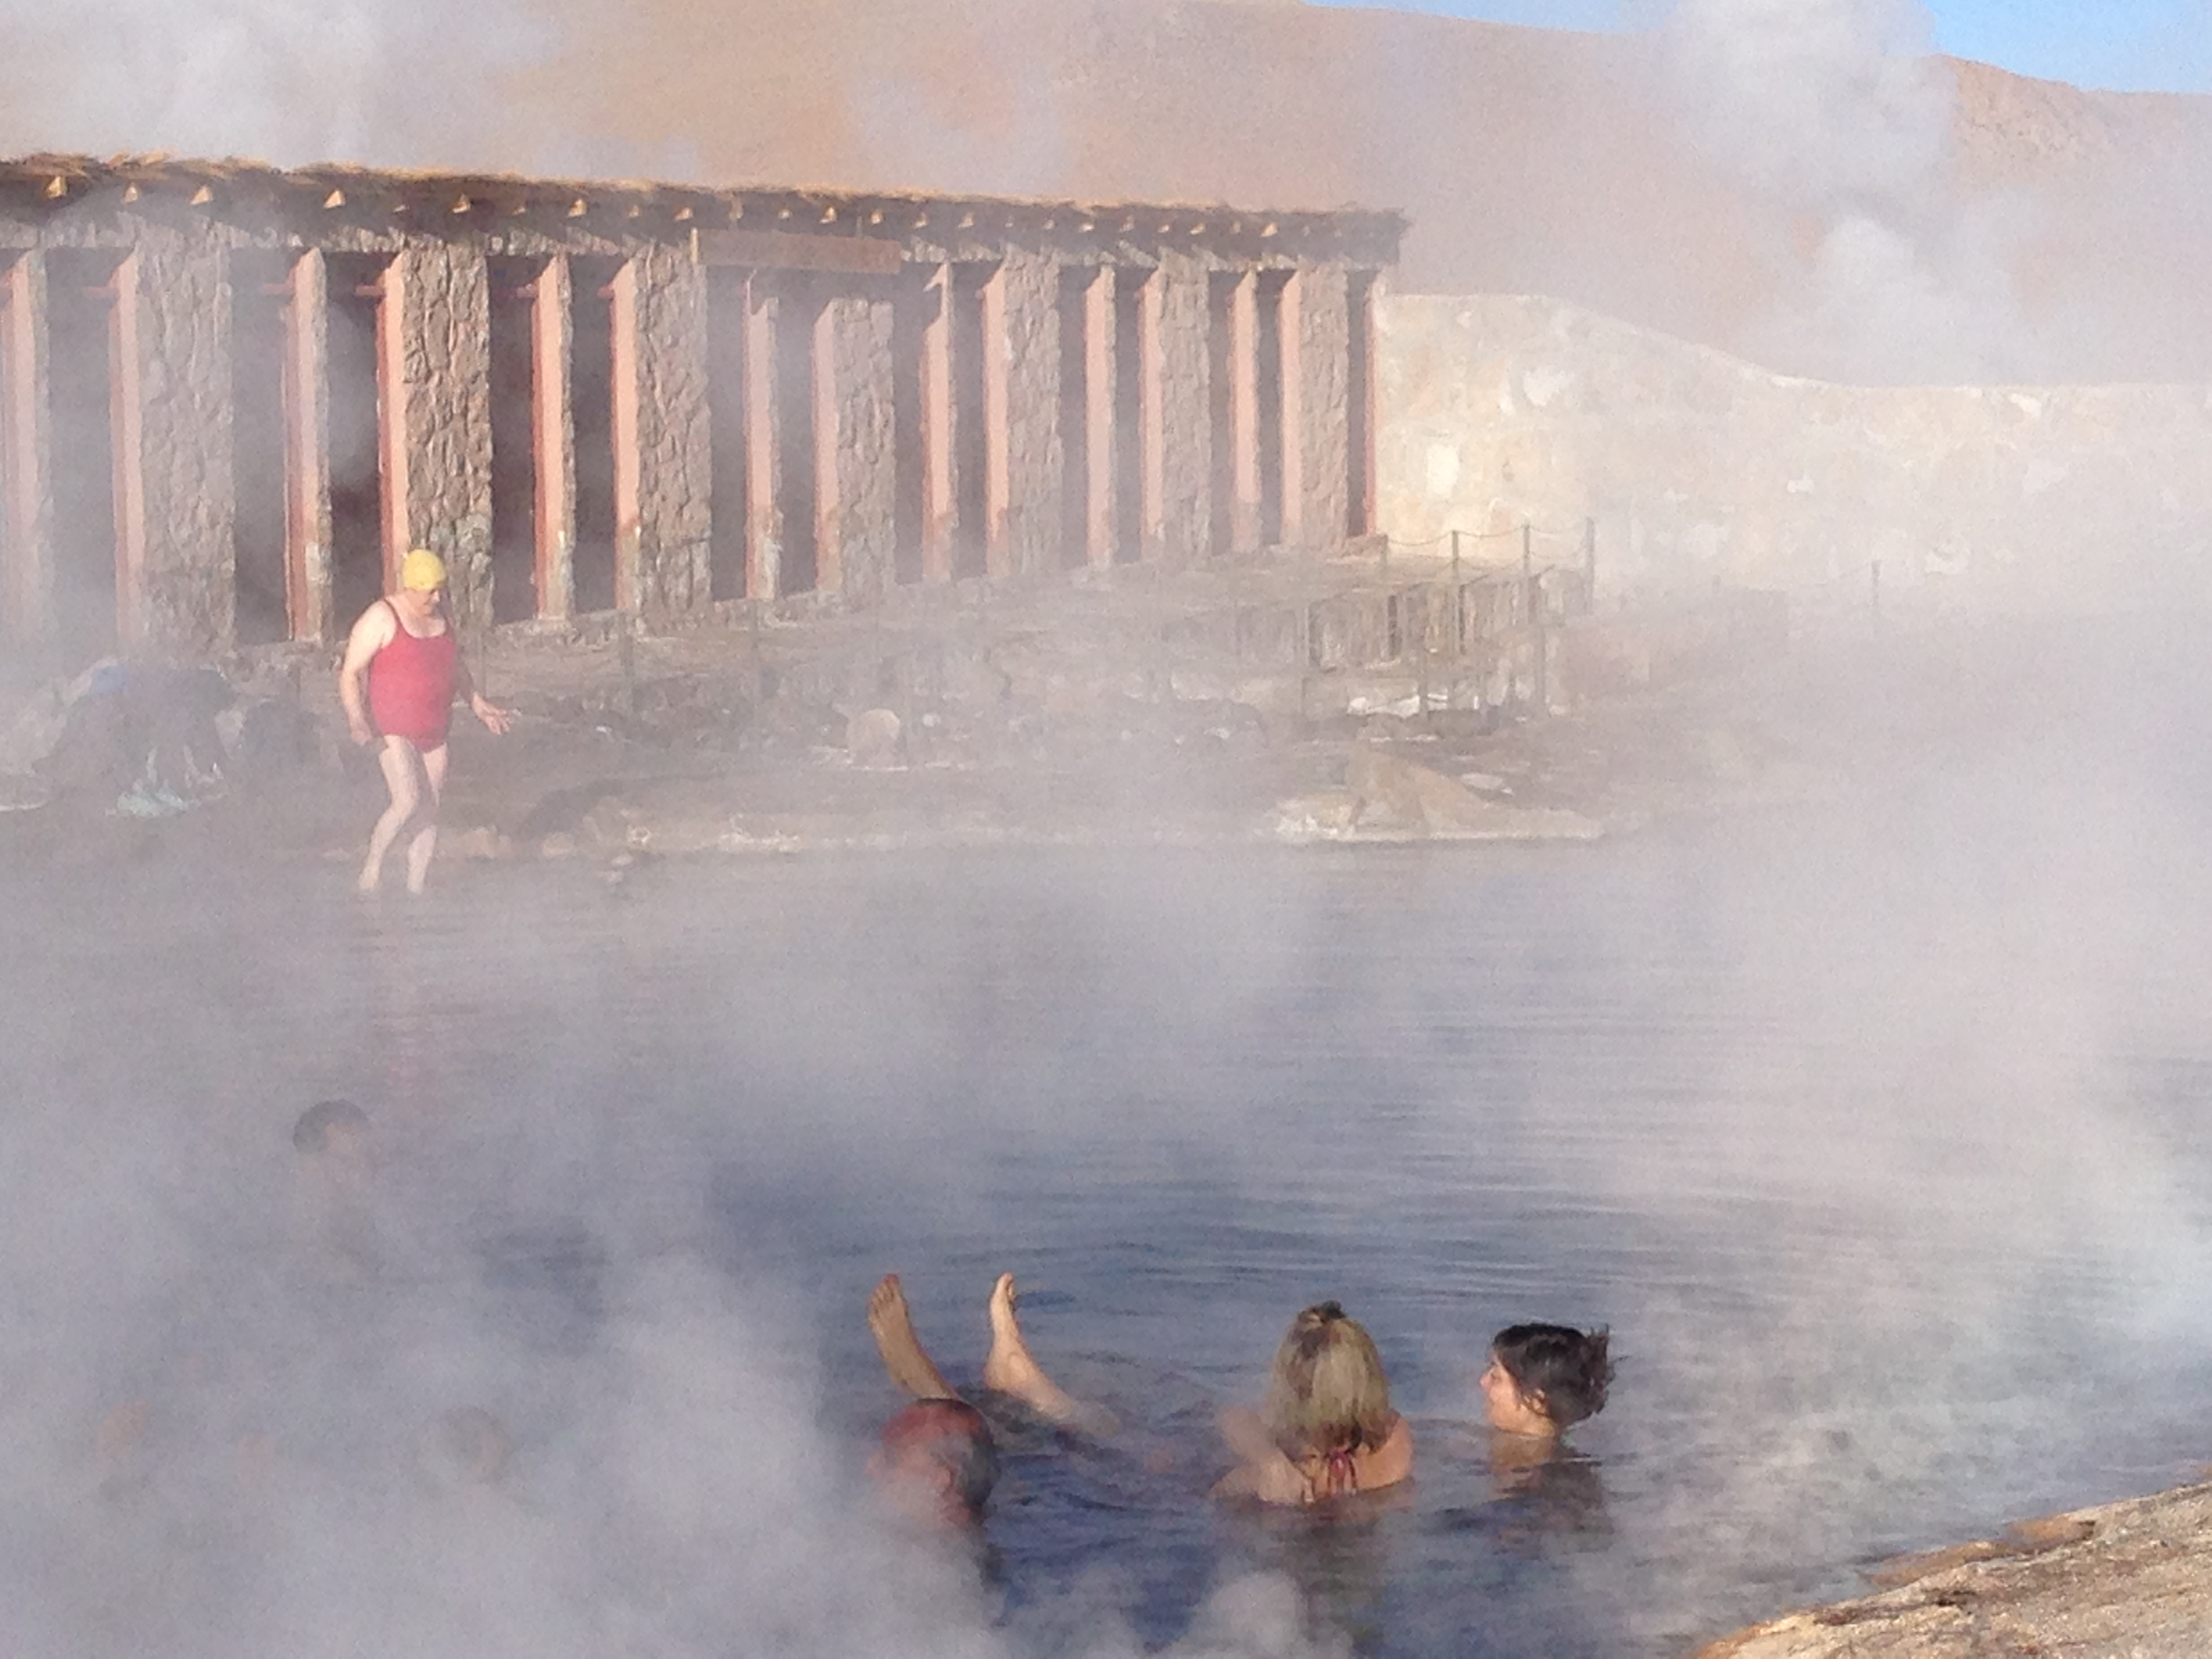 A Russian tourist in her red swimsuit and yellow swim cap gingerly enters the hot springs at <em>El Tatio</em>.